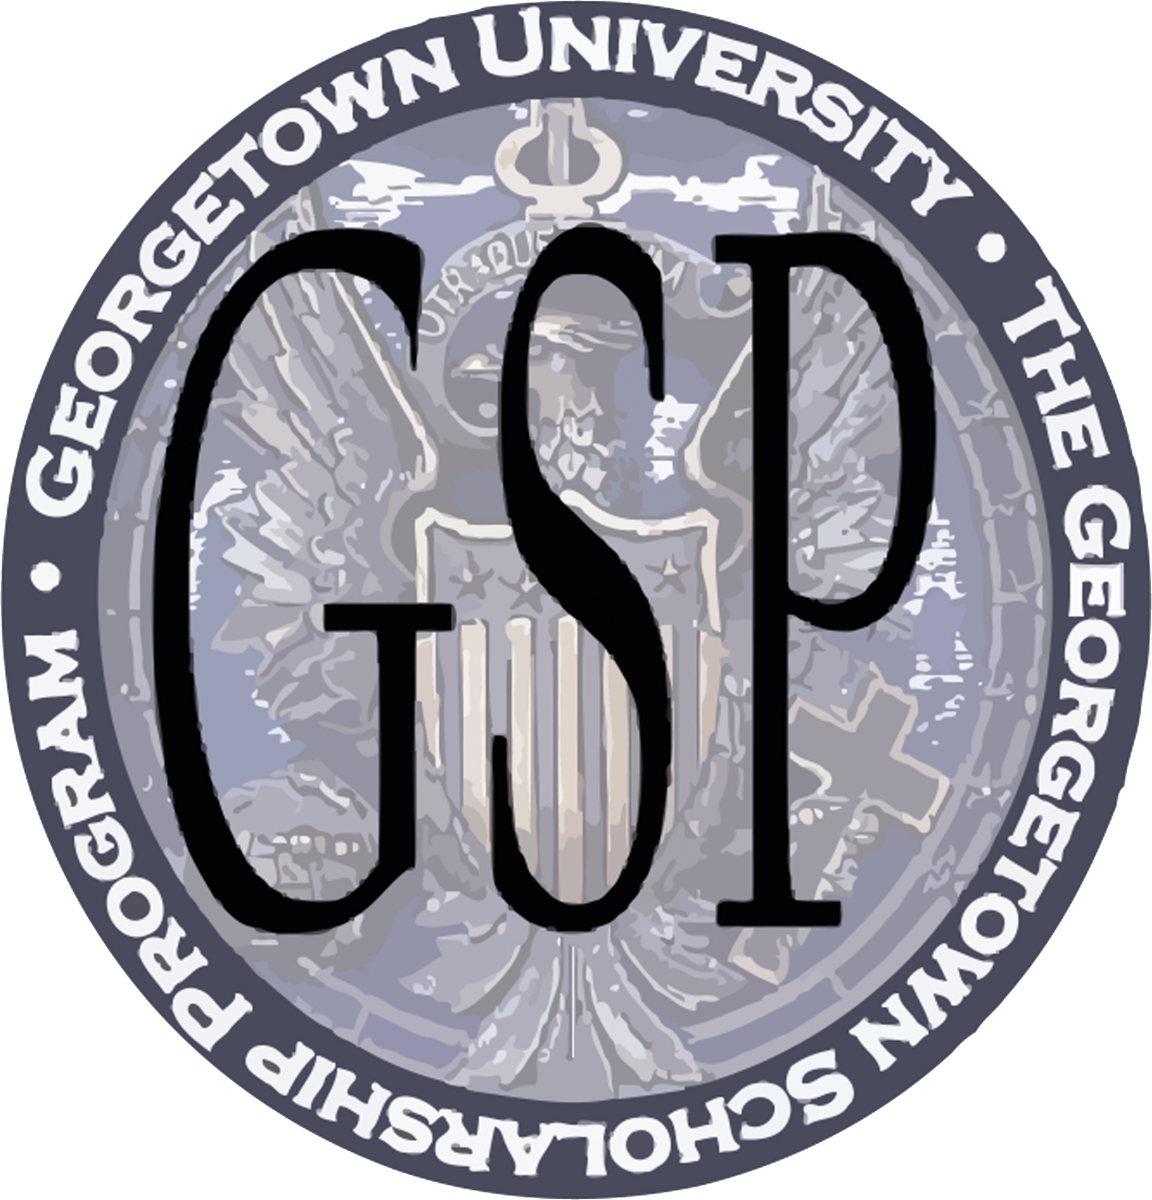 Georgetown Scholarship Program Logo